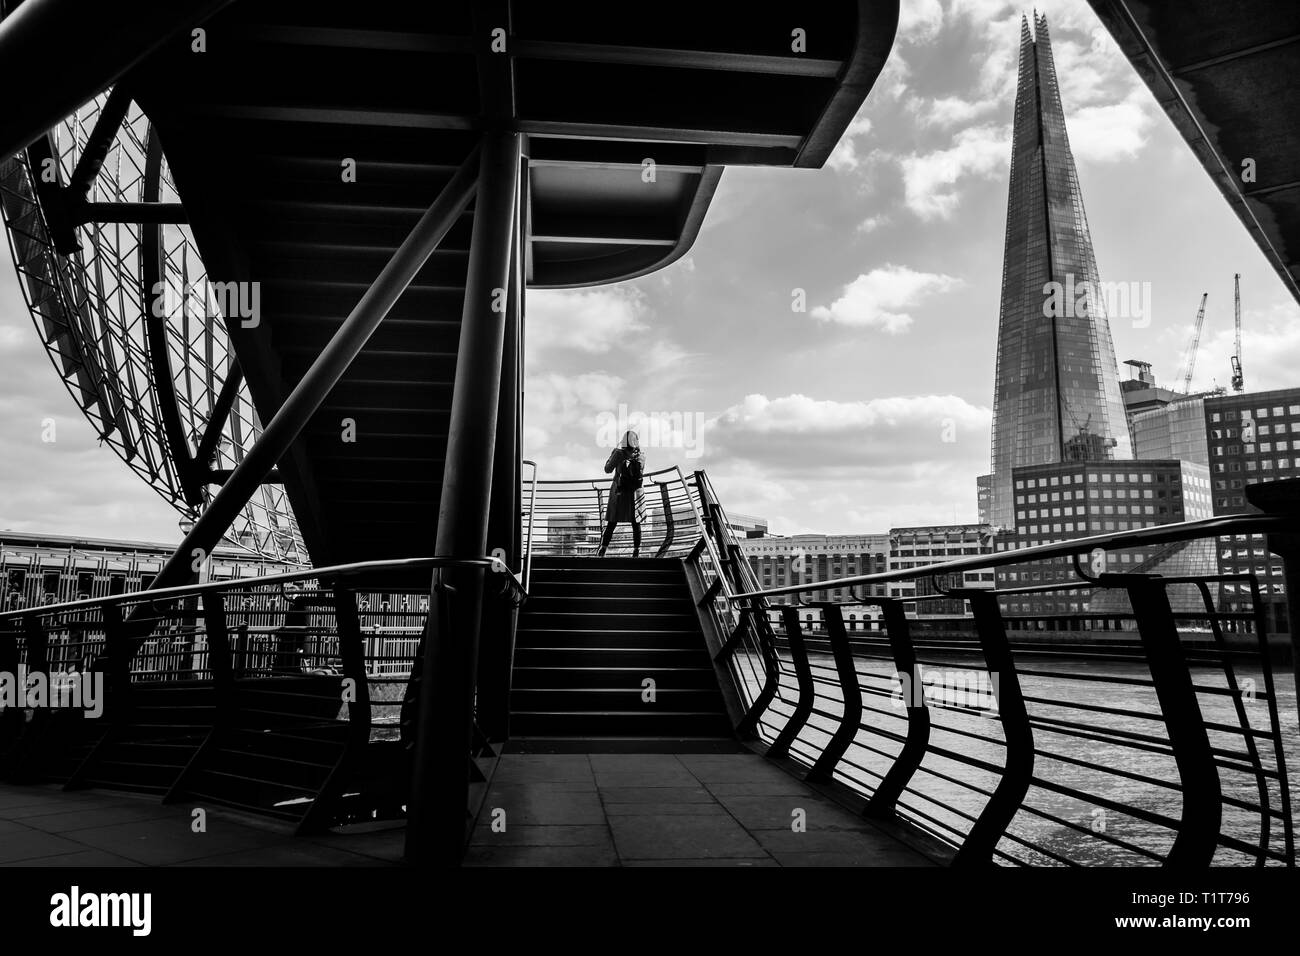 London black and white urban photography: River Thames and the Shard from London Bridge. - Stock Image